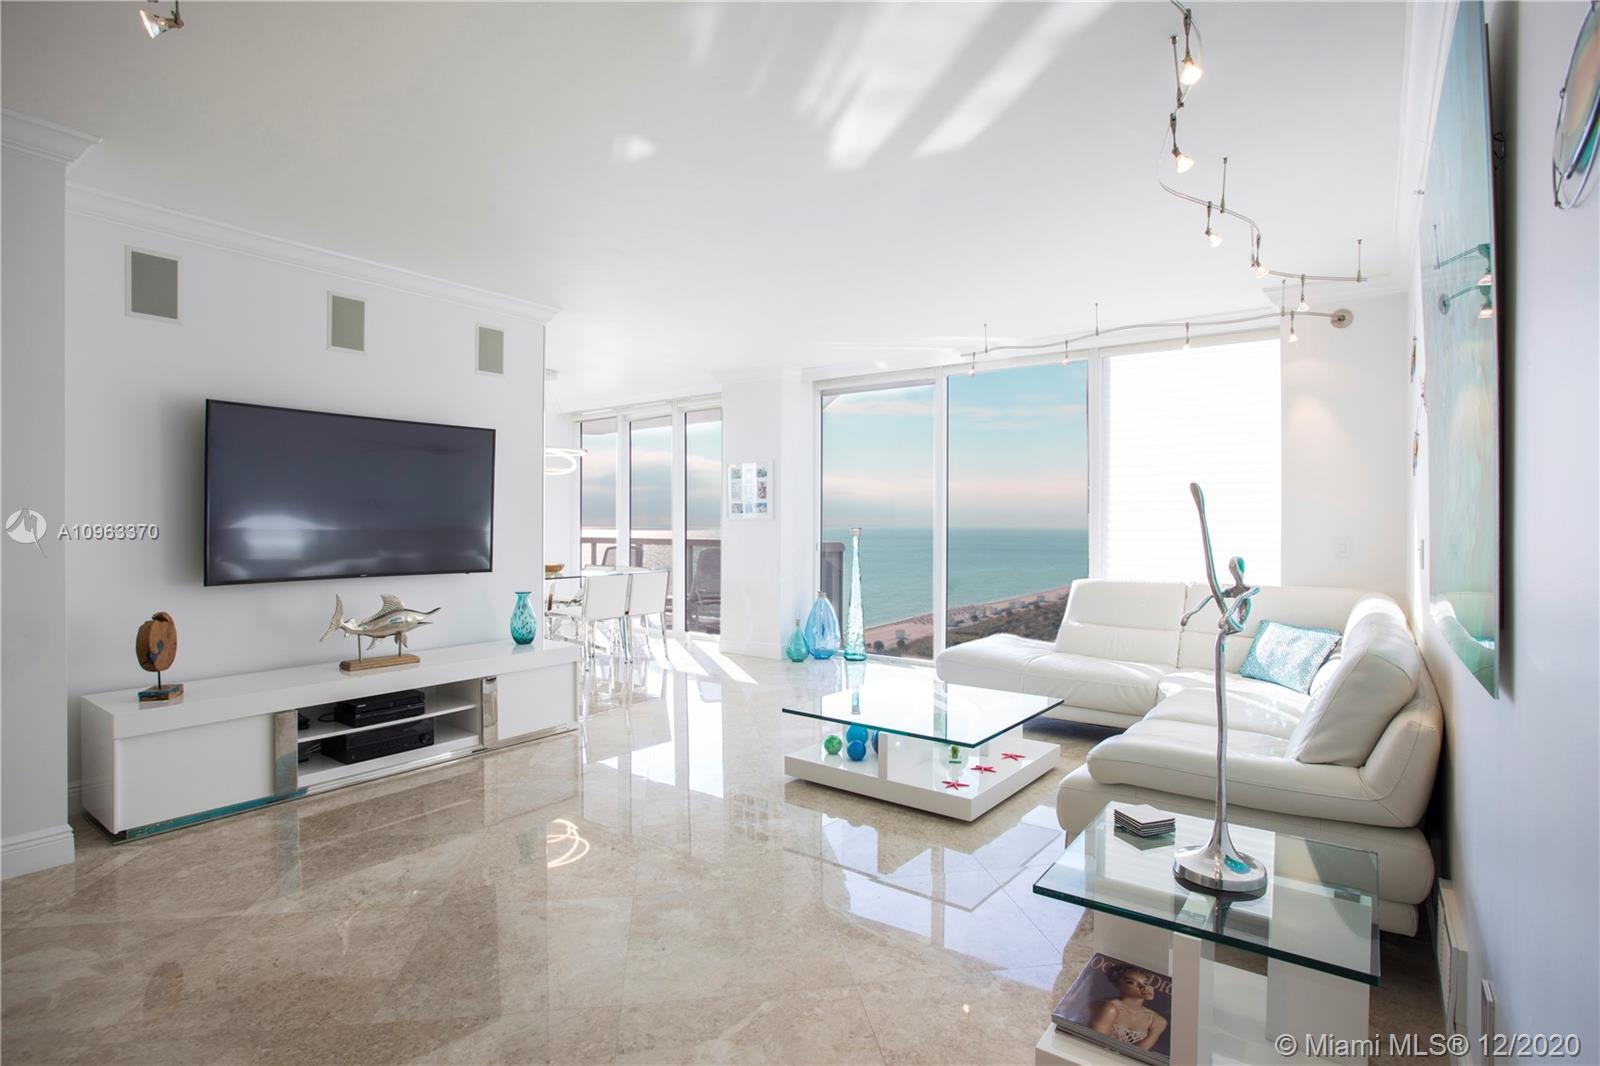 Ultra-elegant 3 bedroom, 3 bath residence corner unit with panoramic ocean views at the Green Diamond Condo, which offers exceptional amenities at one of the most sought-after locations in Miami Beach. Stylish and spacious, some of the highlights include floor-to-ceiling windows, marble flooring, custom wall mirrors, double door entry and 2 large terraces, perfect for enjoying gorgeous sunrises. The principal suite includes a large bathroom and a spacious custom-built, walk-in closet. The unit comes with 2 assigned parking spaces & 2 storage rooms. Set oceanfront with easy access to Miami International Airport and major neighborhoods such as Downtown Miami, Bal Harbour, South Beach, Design District and Wynwood.